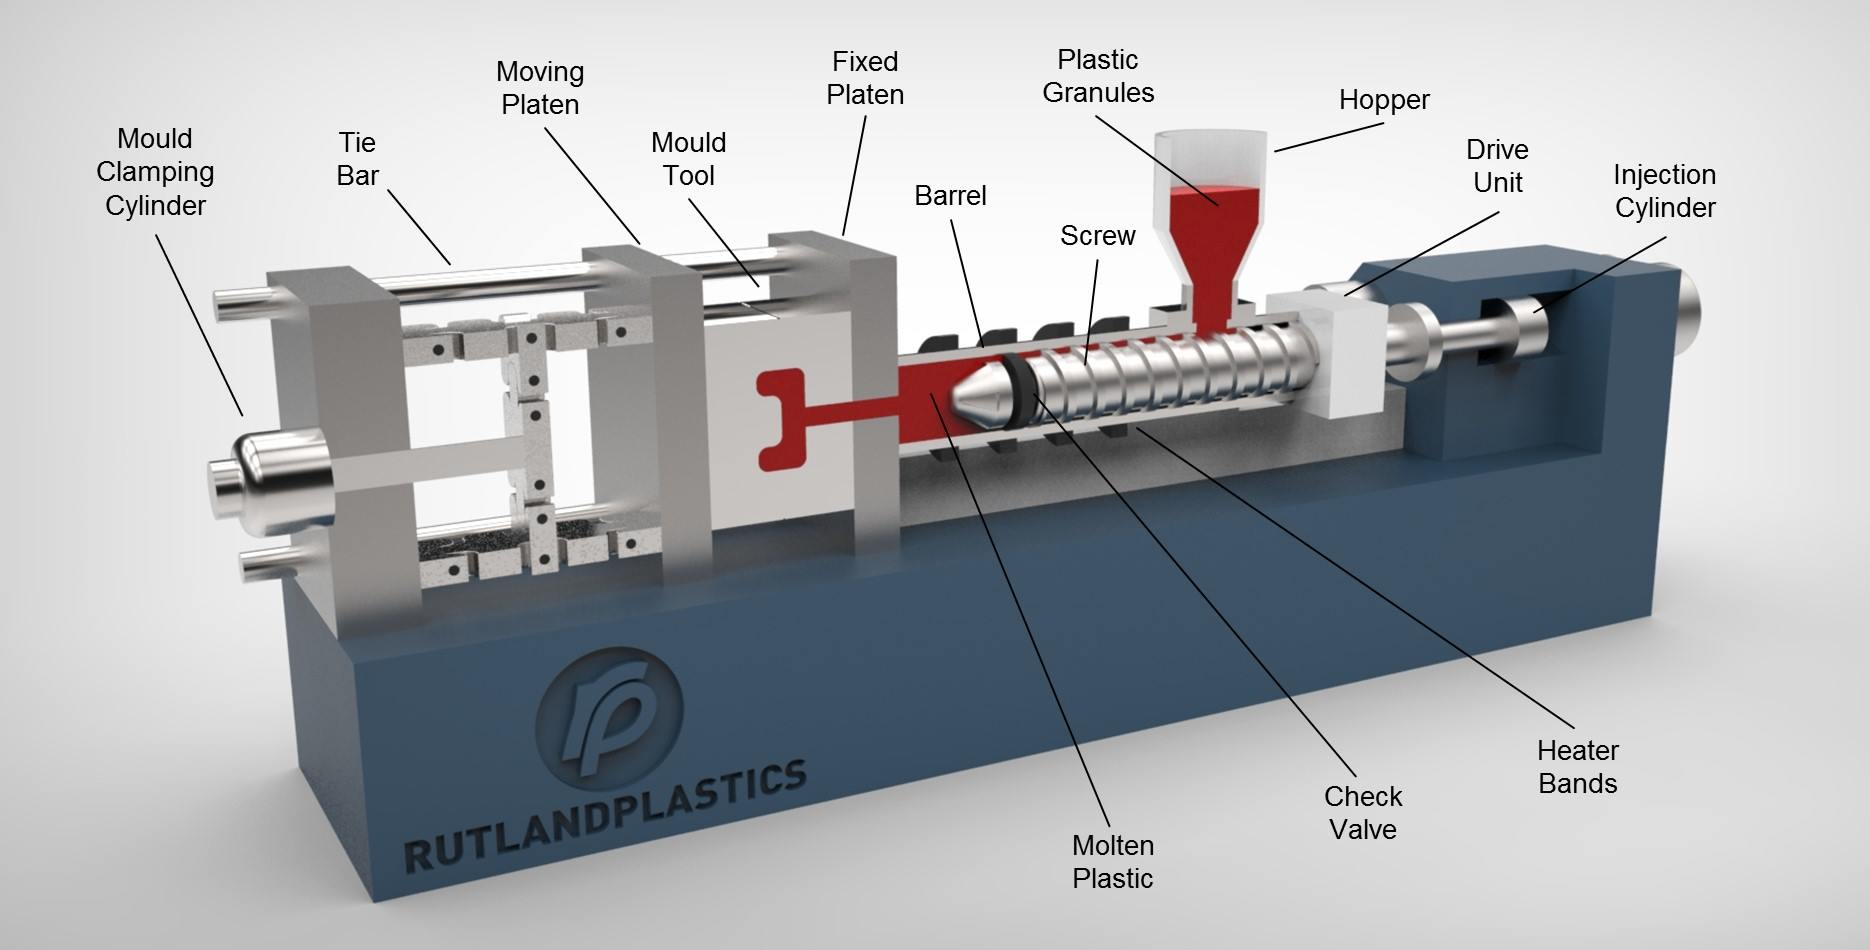 Injection Moulding Machine Diagram